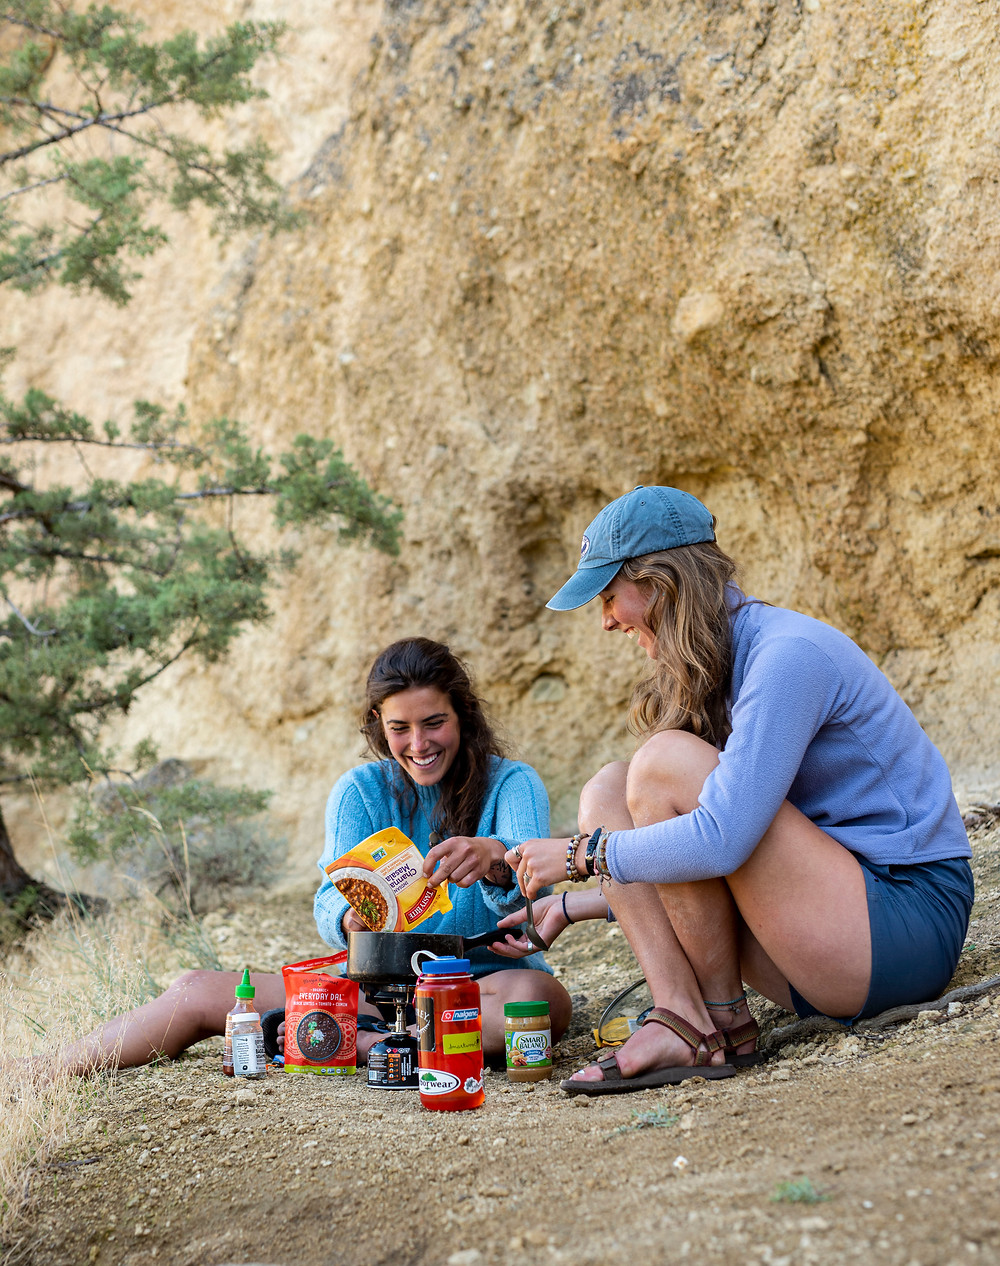 Girls cooking backcountry food